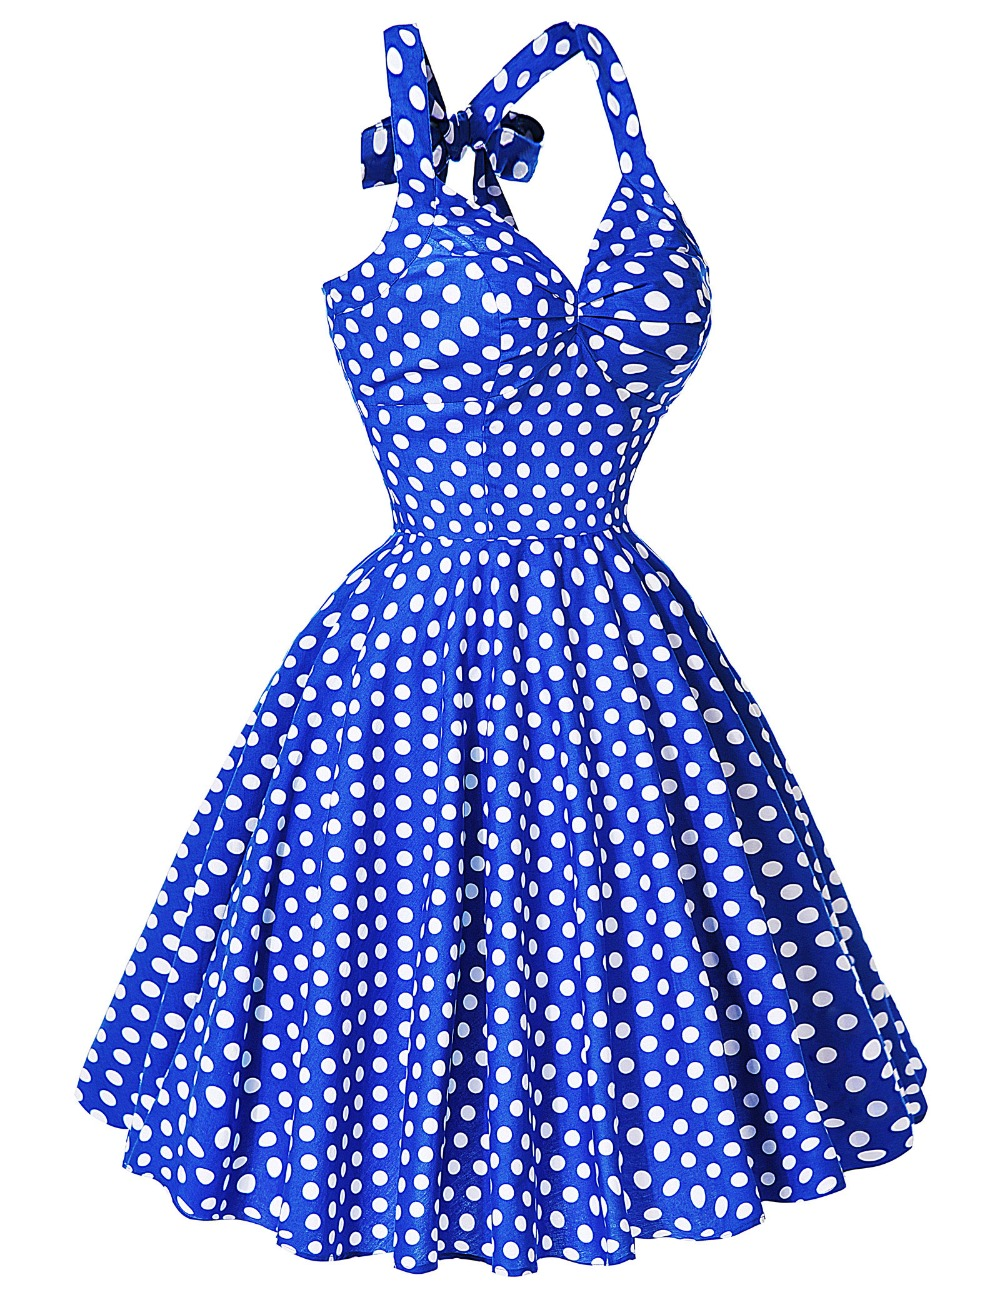 2016 Summer Party Swing Dresses Women Rockabilly 50s 60s Dress Audrey Hepburn Vestidos Polka Dots Retro Vintage Plus Size - shoppingitforless store